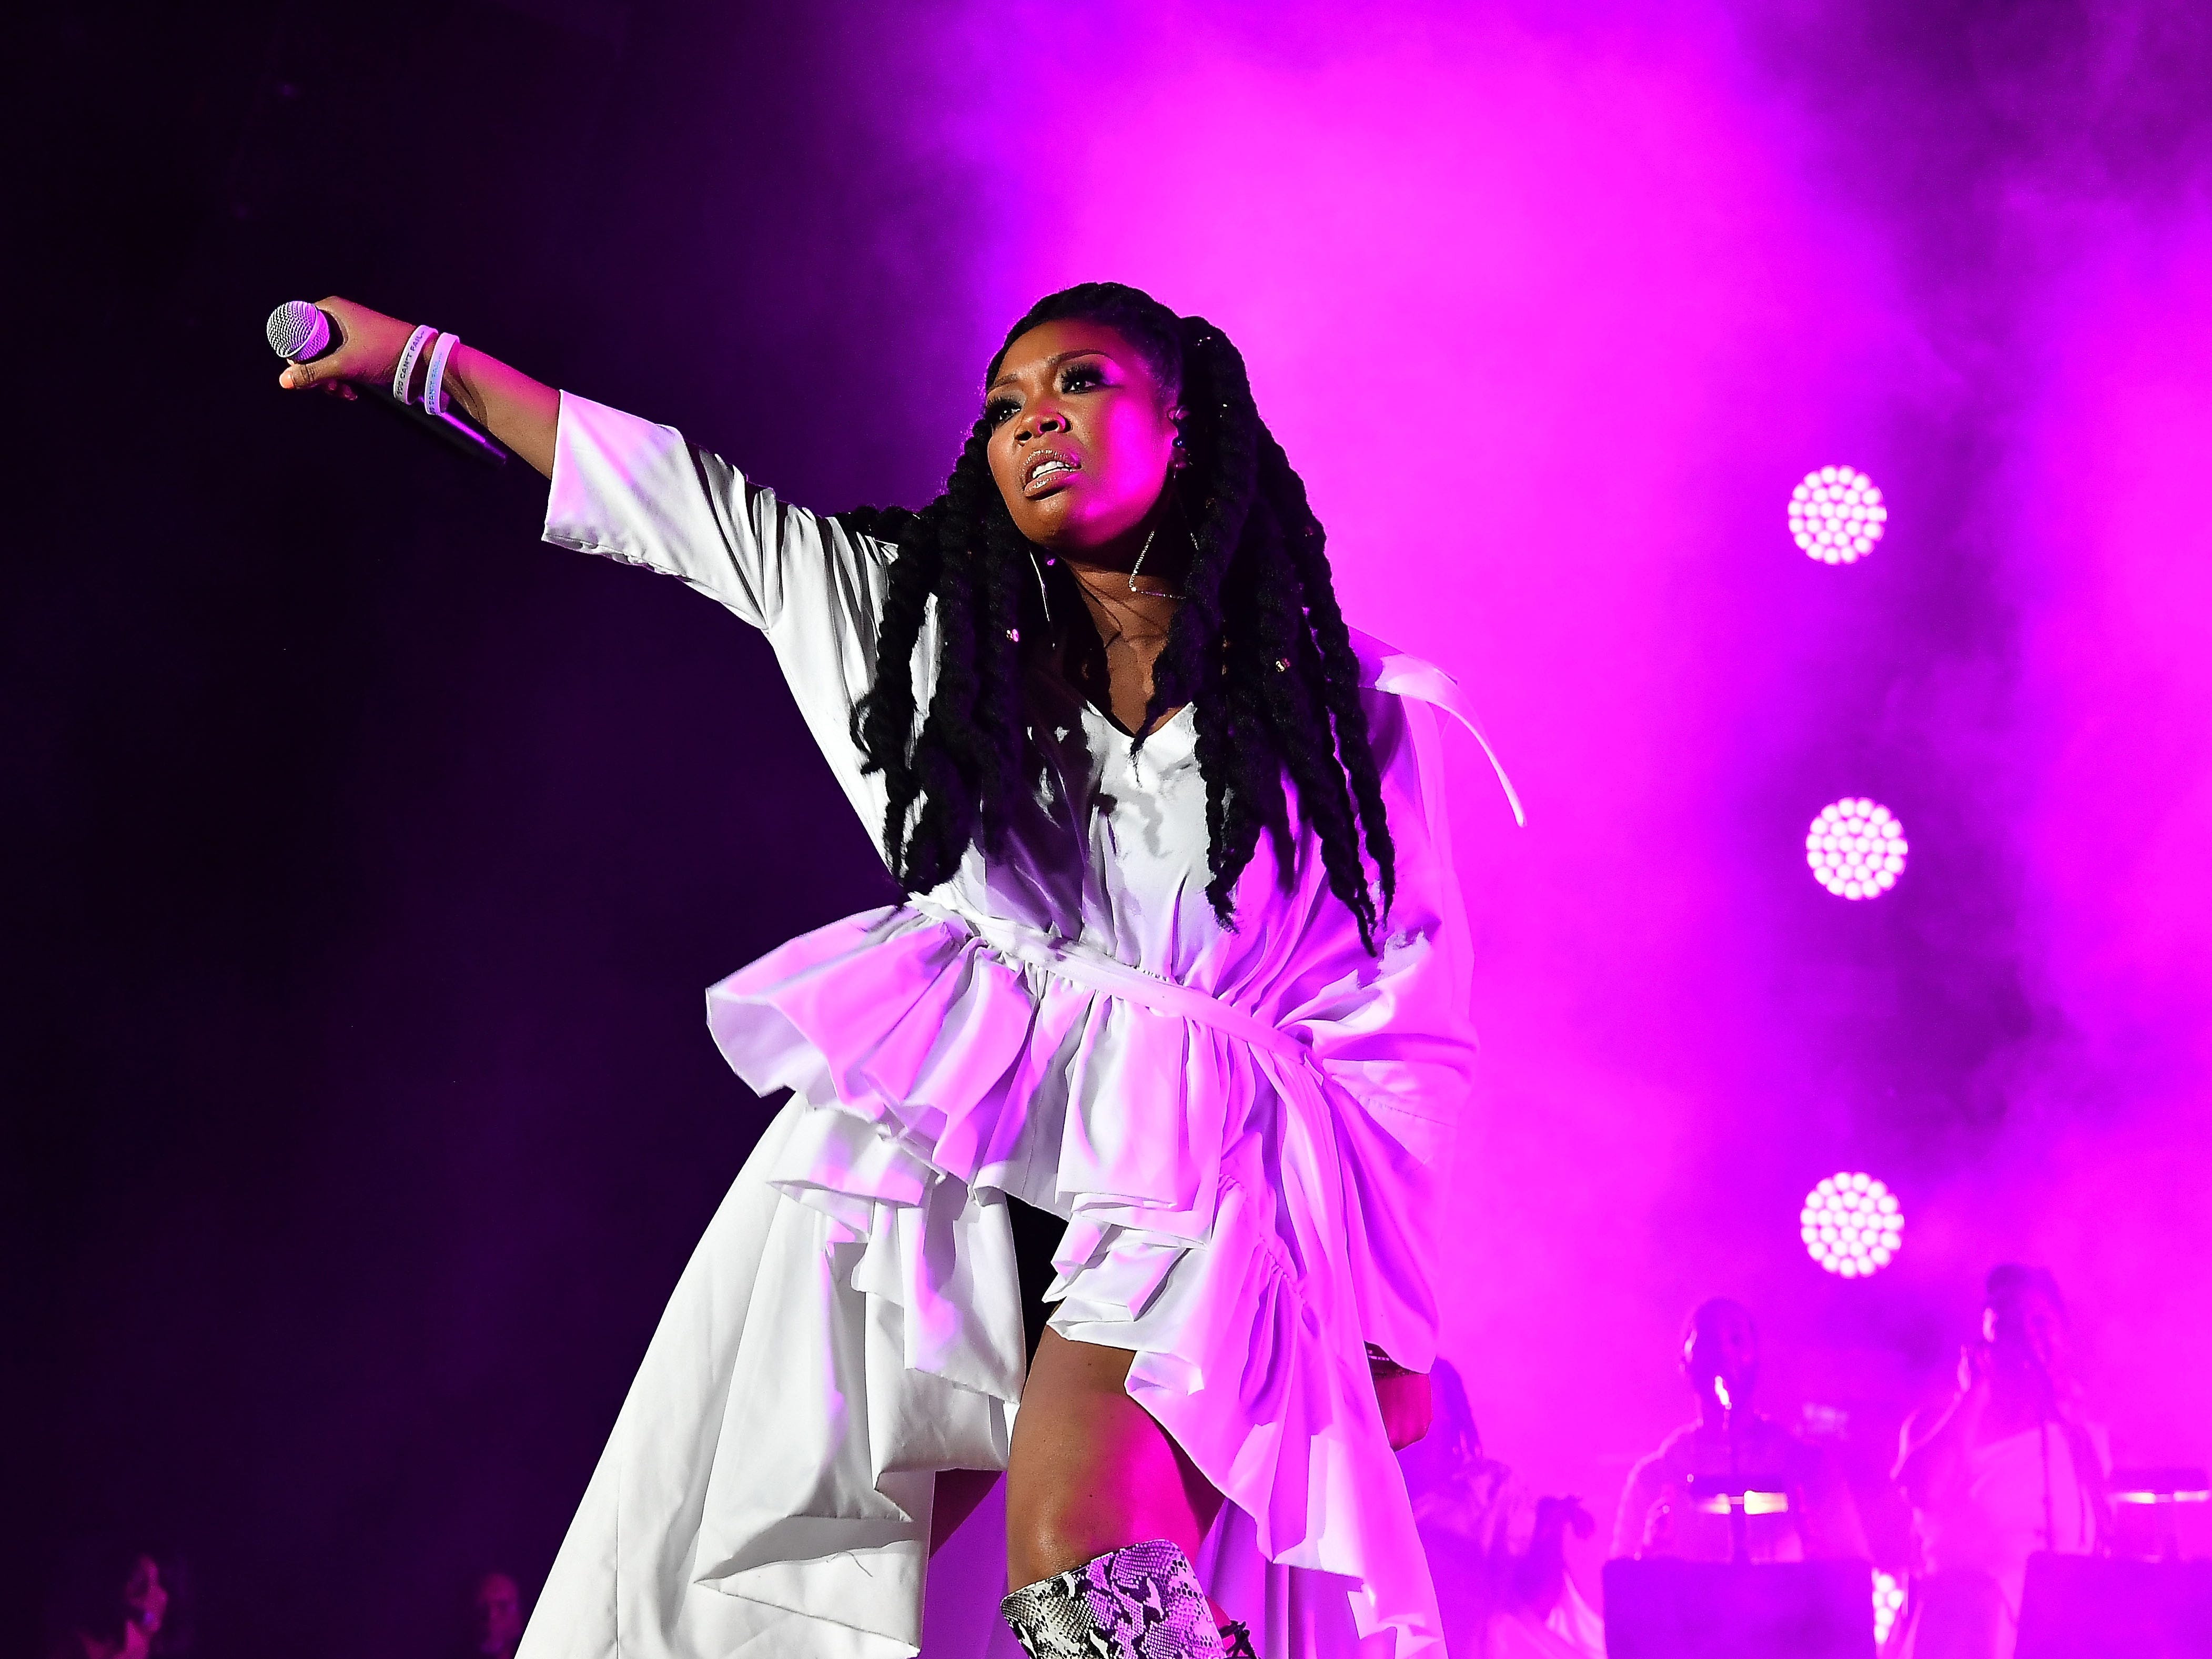 NEW ORLEANS, LA - JULY 07:  Brandy Norwood performs onstage during the 2018 Essence Festival -Day 2 at Louisiana Superdome on July 7, 2018 in New Orleans, Louisiana.  (Photo by Paras Griffin) ORG XMIT: 775184599 ORIG FILE ID: 993575084